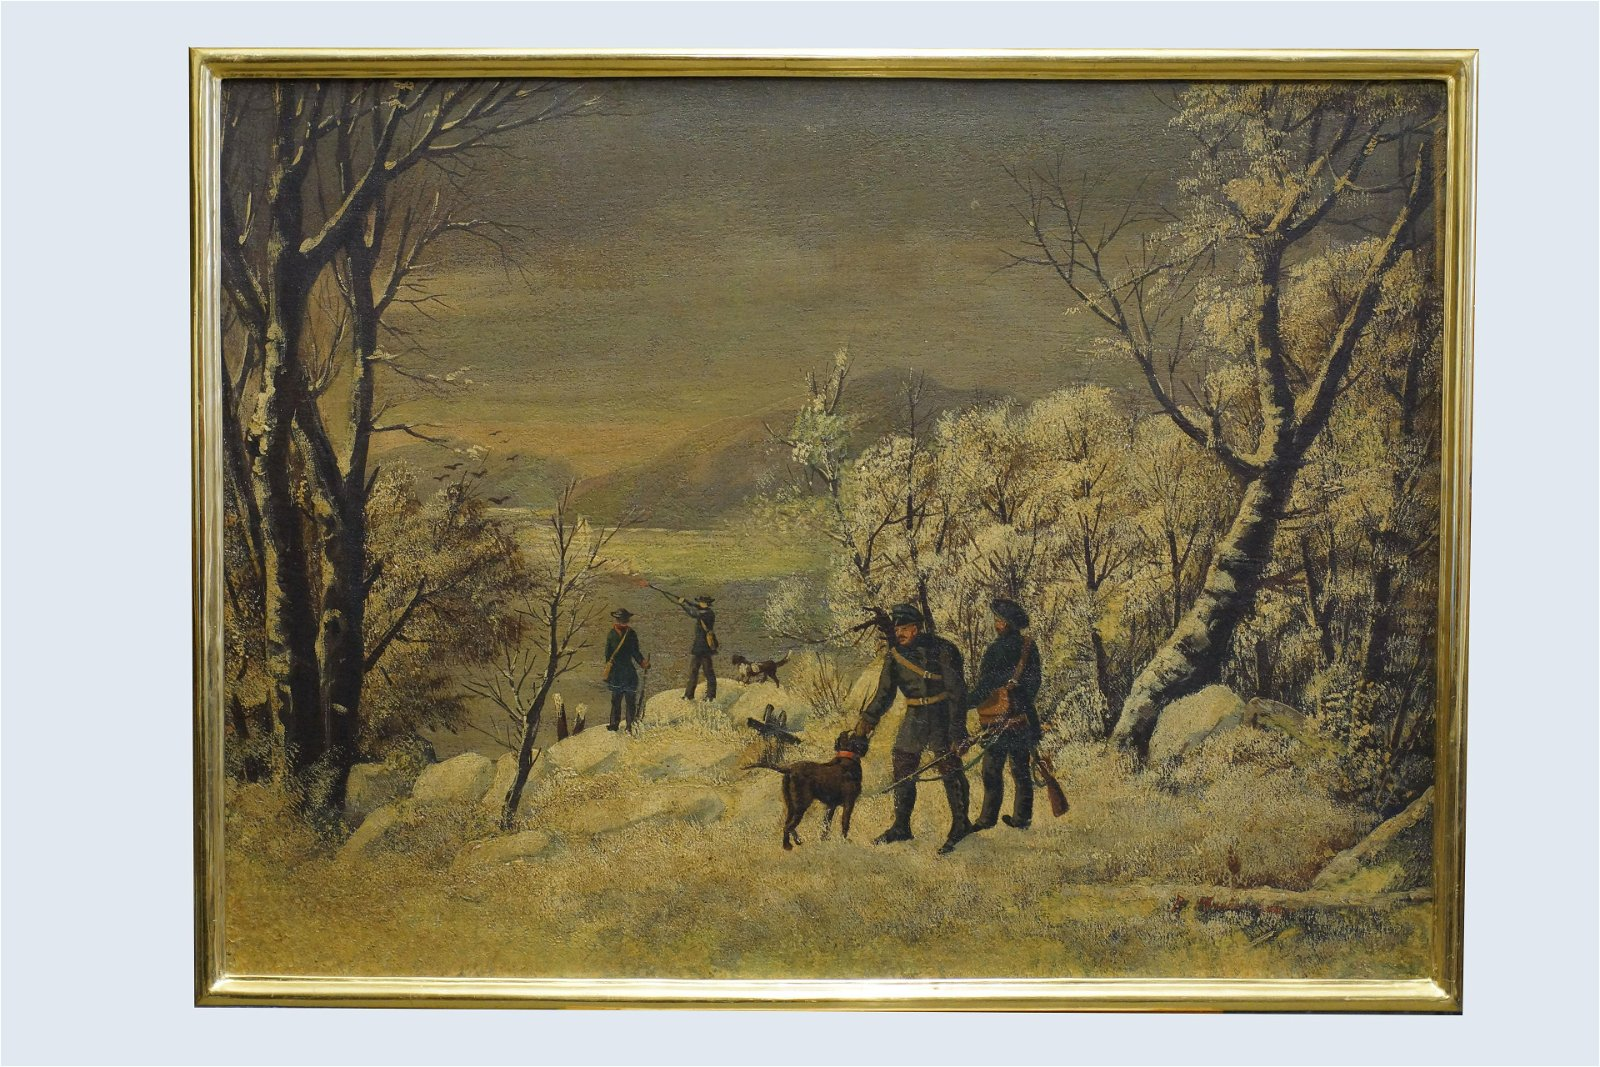 Antique Russian Painting Oil On Canvas Hunting